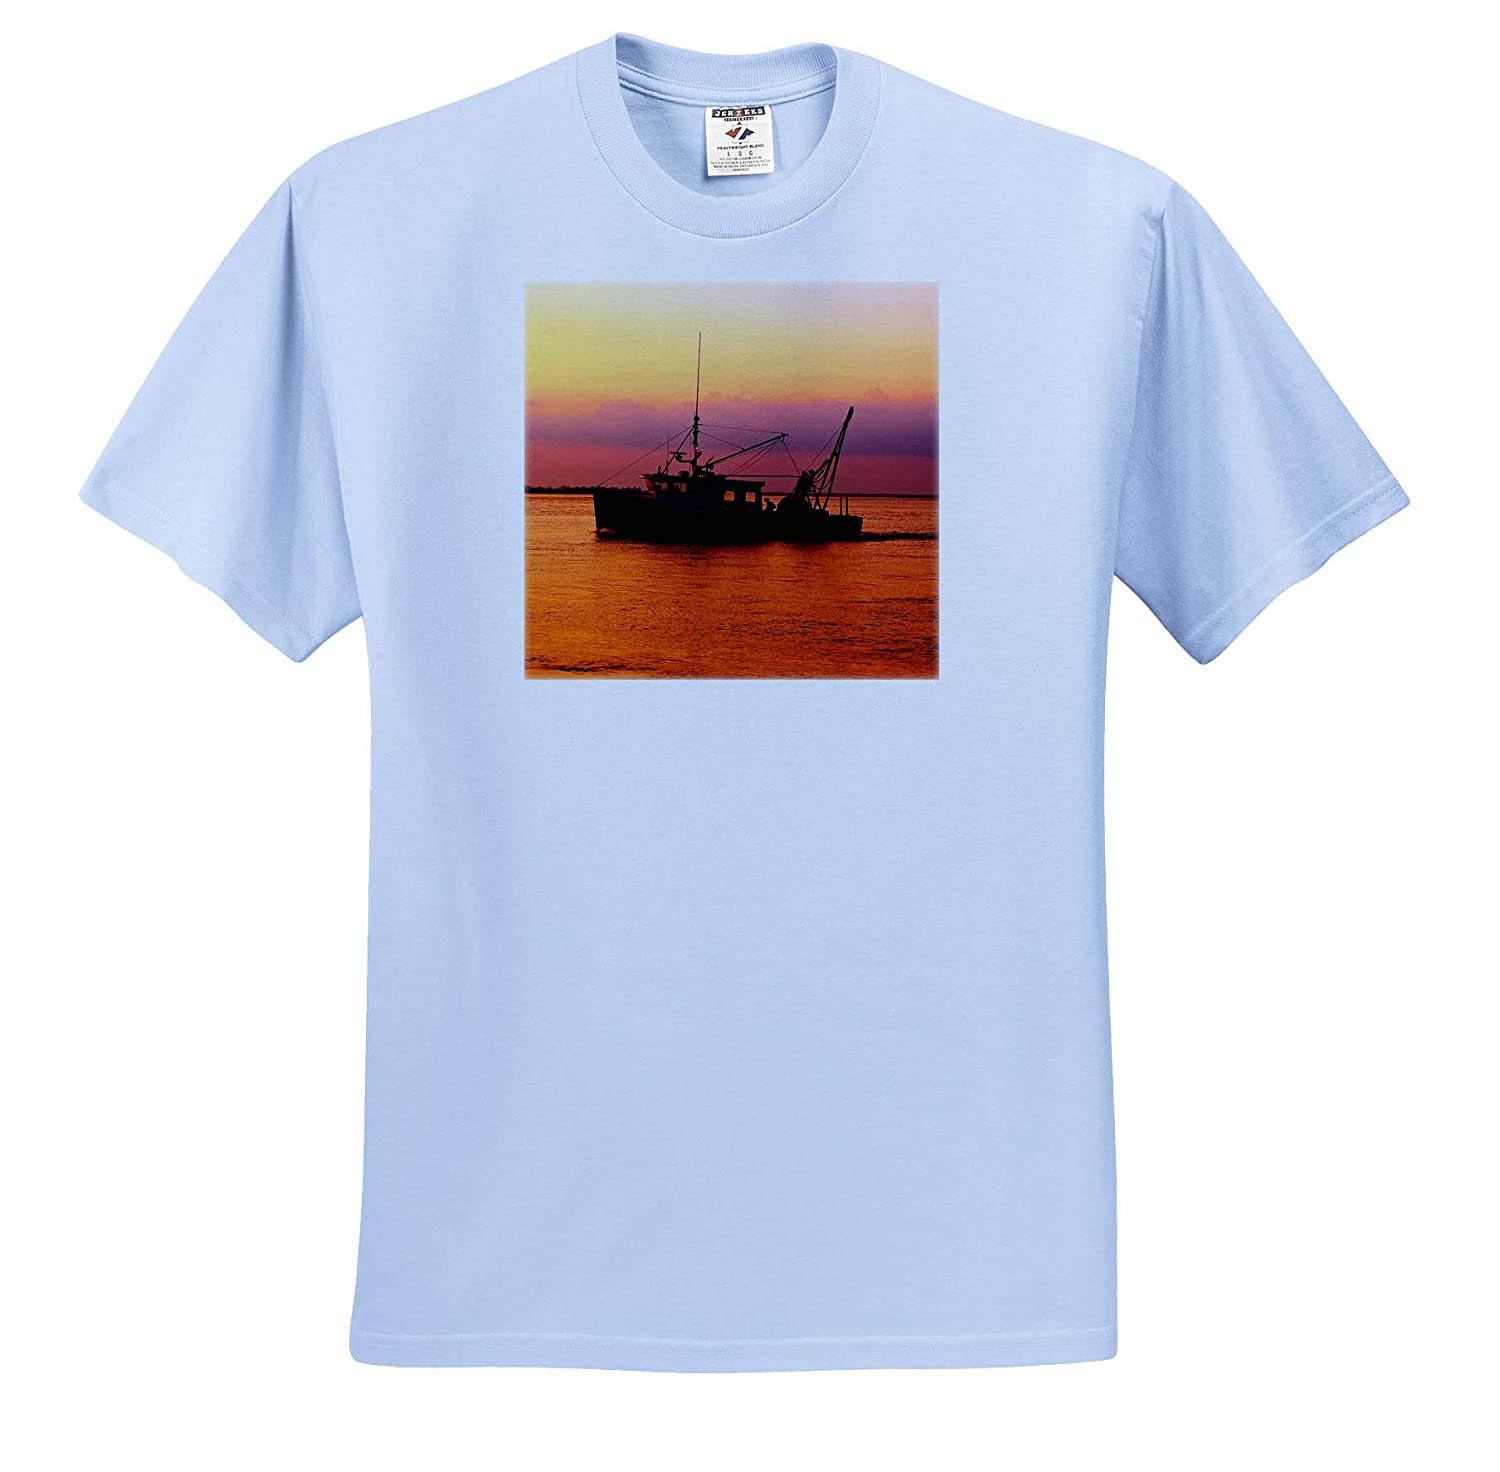 - T-Shirts Transportation Photograph of a Fishing Boat Heading Home During a Stunning Sunset 3dRose Stamp City